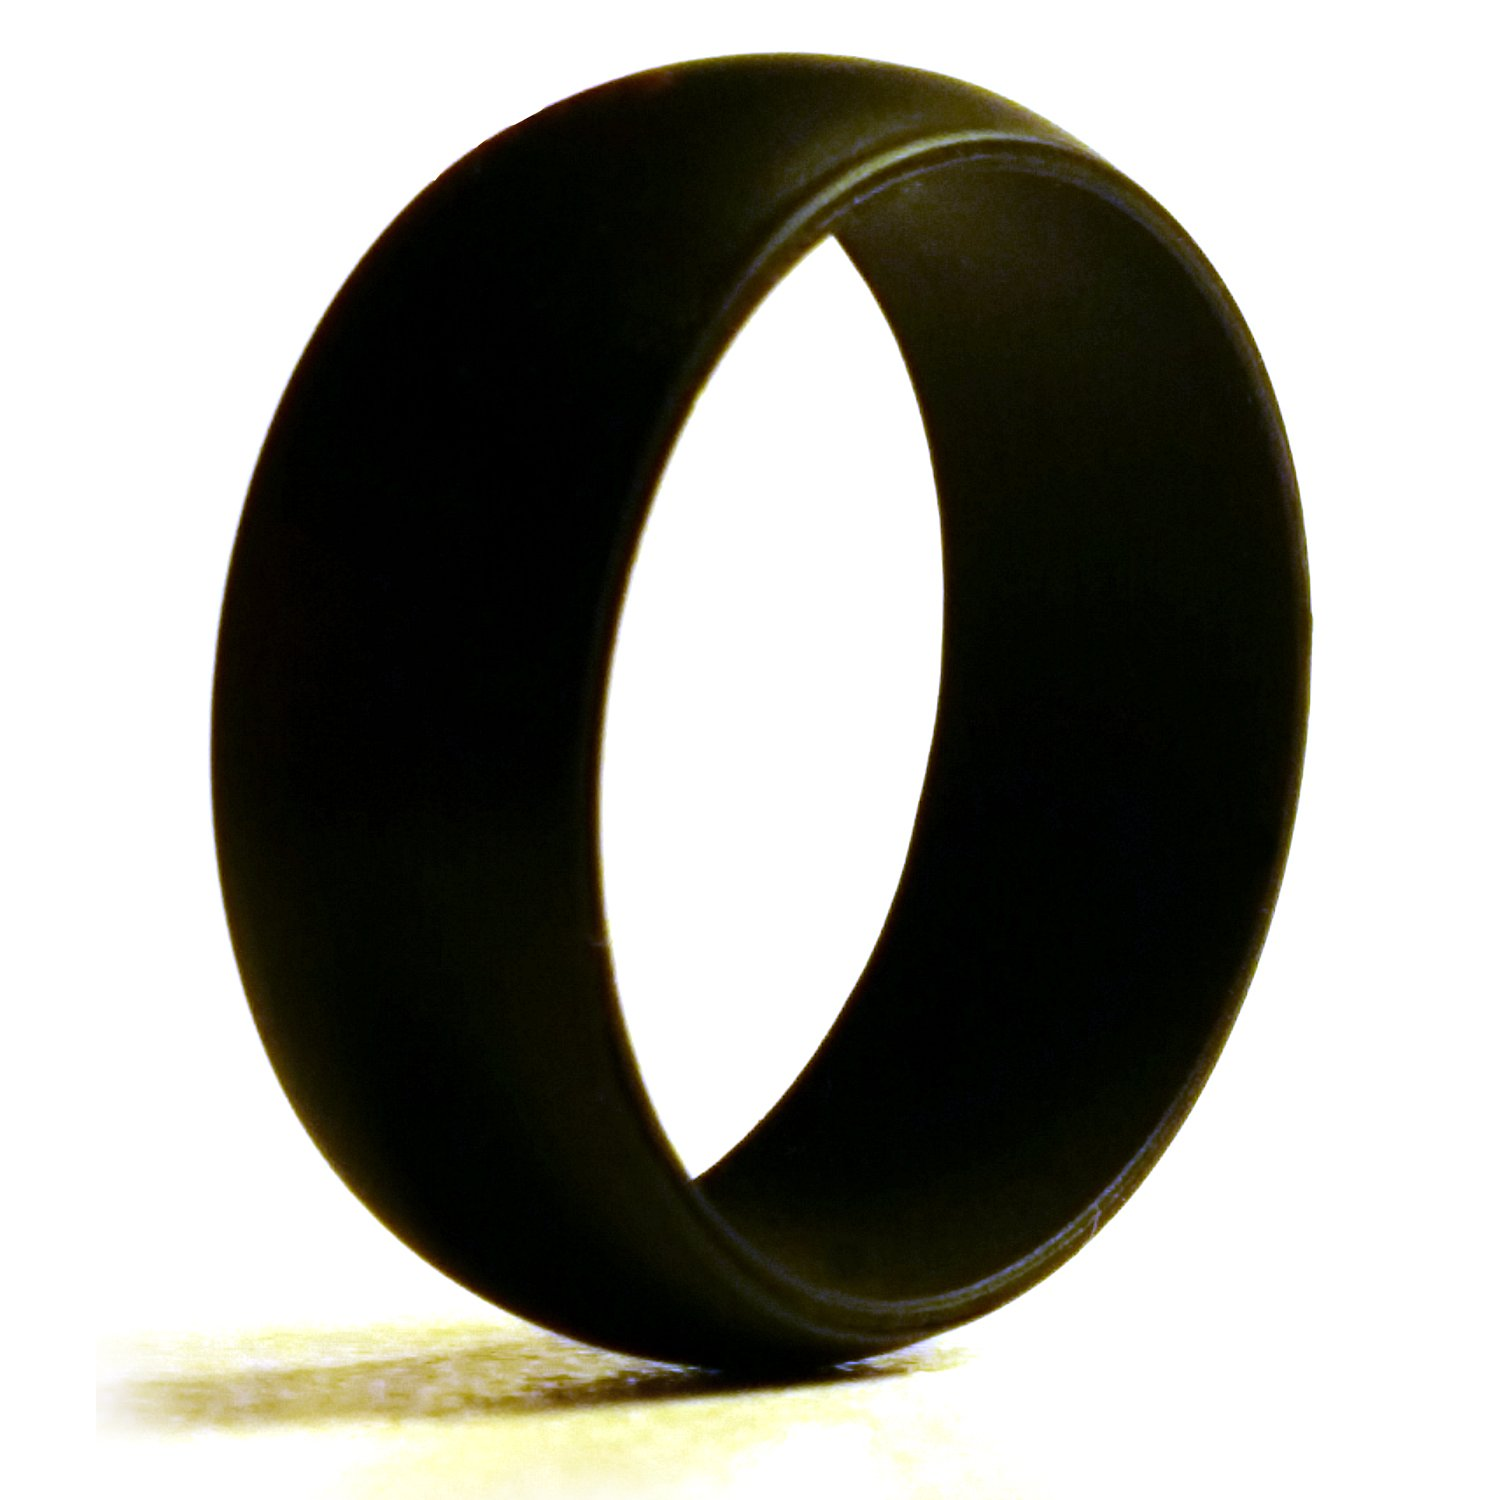 4EVA Men's Silicone Wedding Ring - For the Active Lifestyle of Athletes, Campers, those who work with Heavy Equipment and Machinery and Outdoor Adventurers who want to show their Love is For Ever!